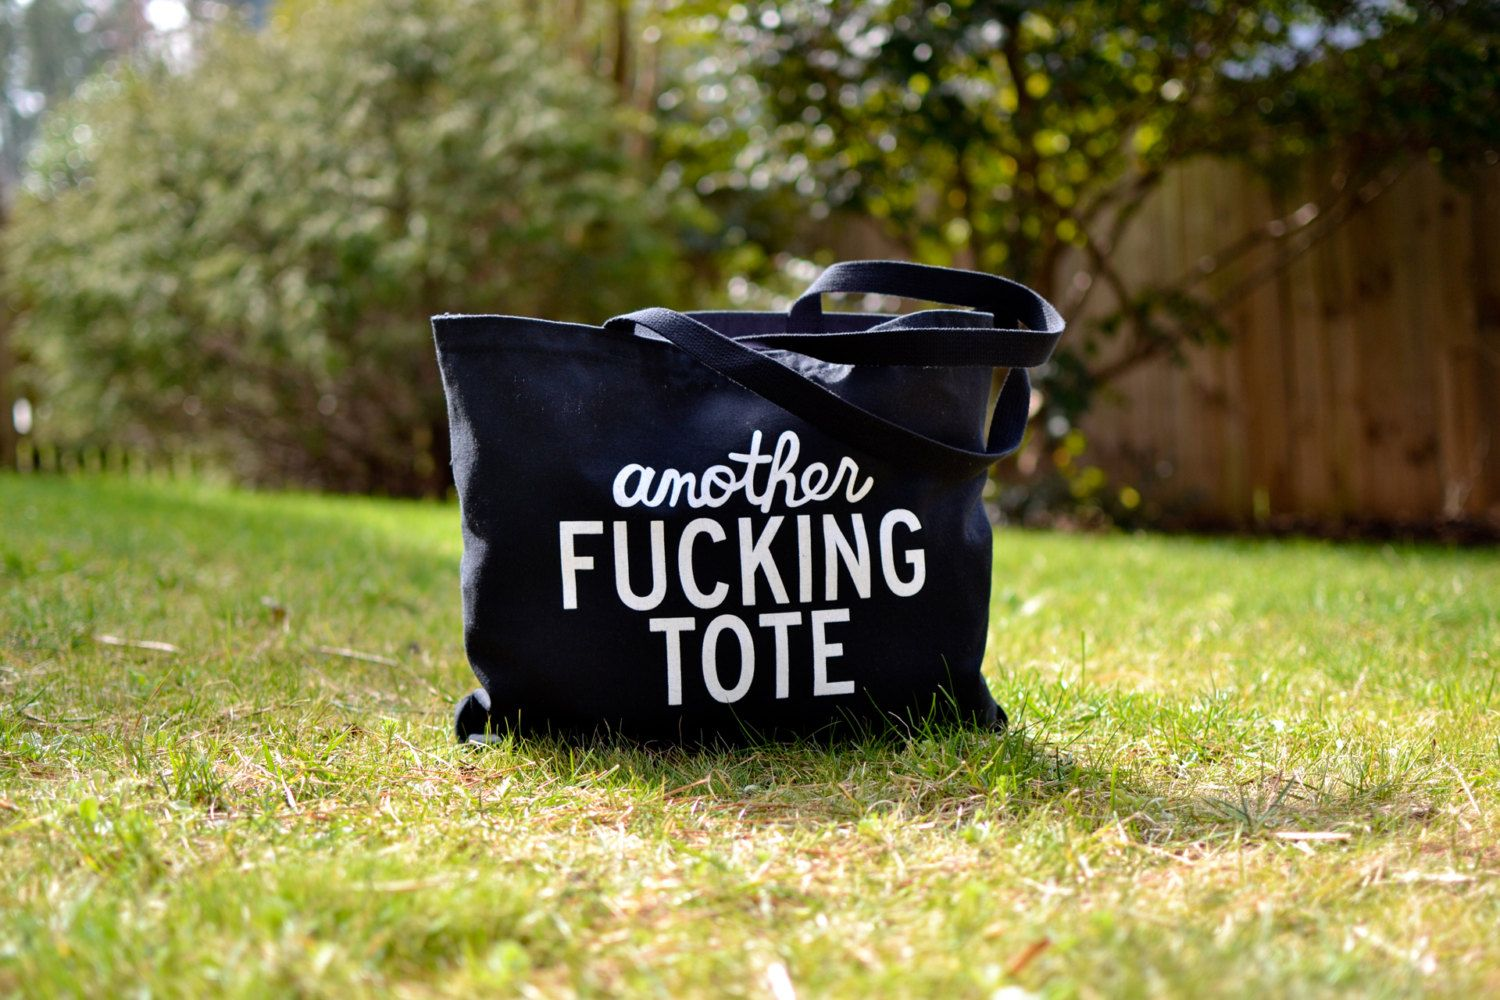 Another+Fucking+black++white+Tote+by+AnotherFingTote+on+Etsy,+$19.95